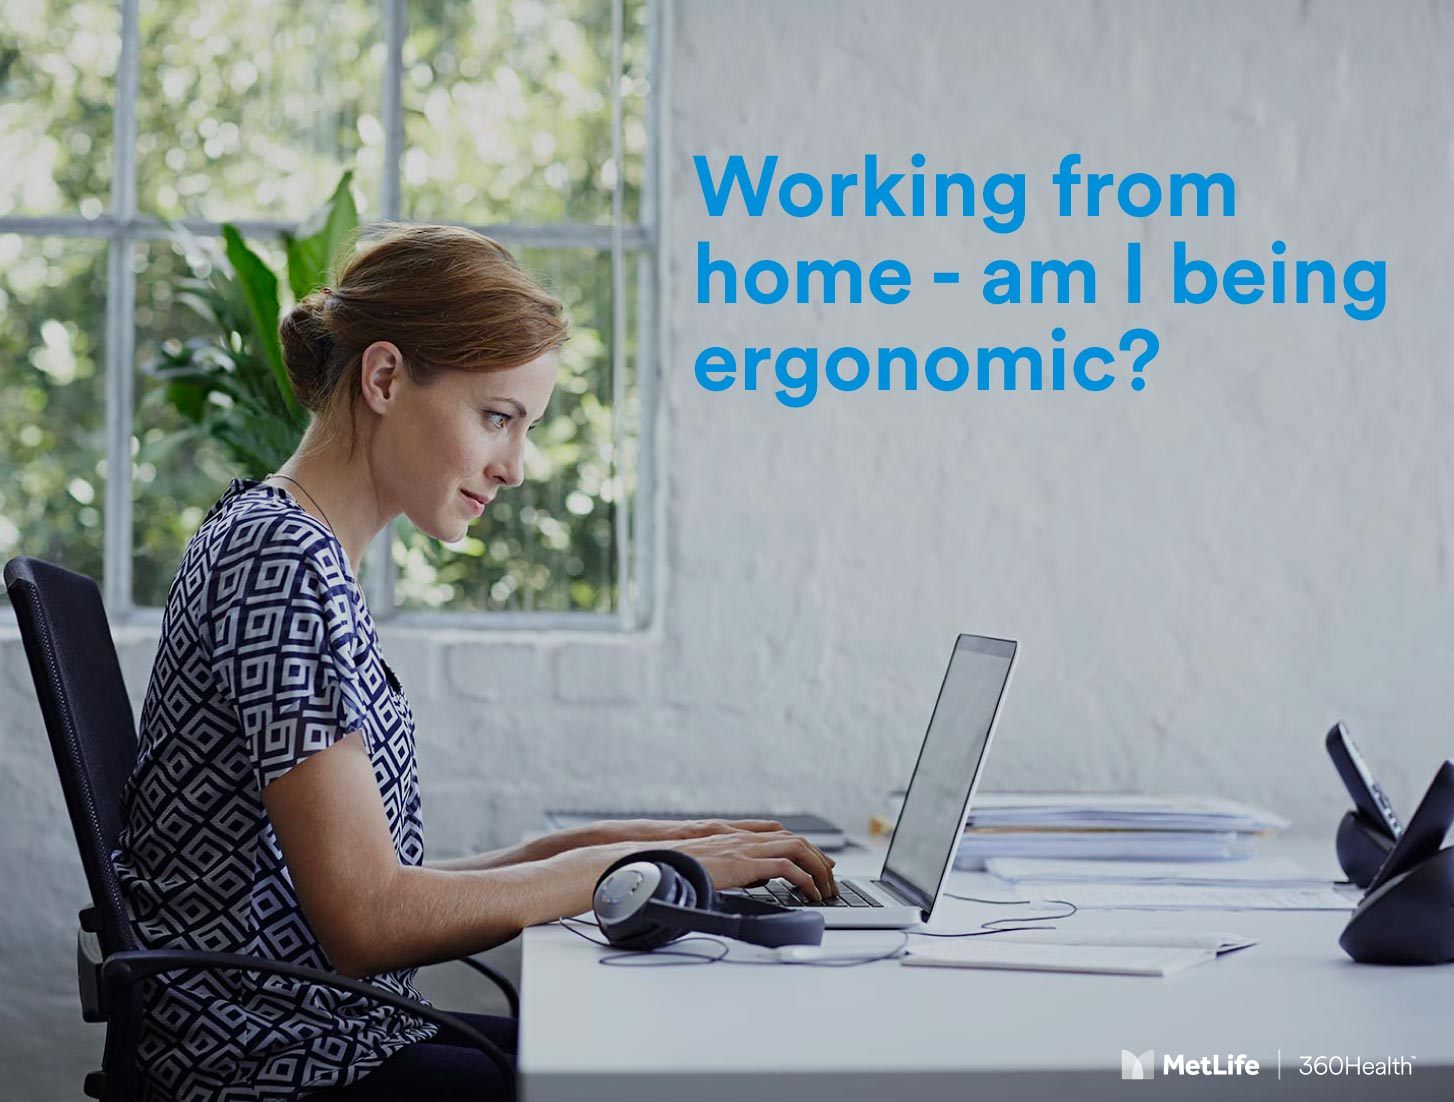 Working from home - am I being ergonomic?